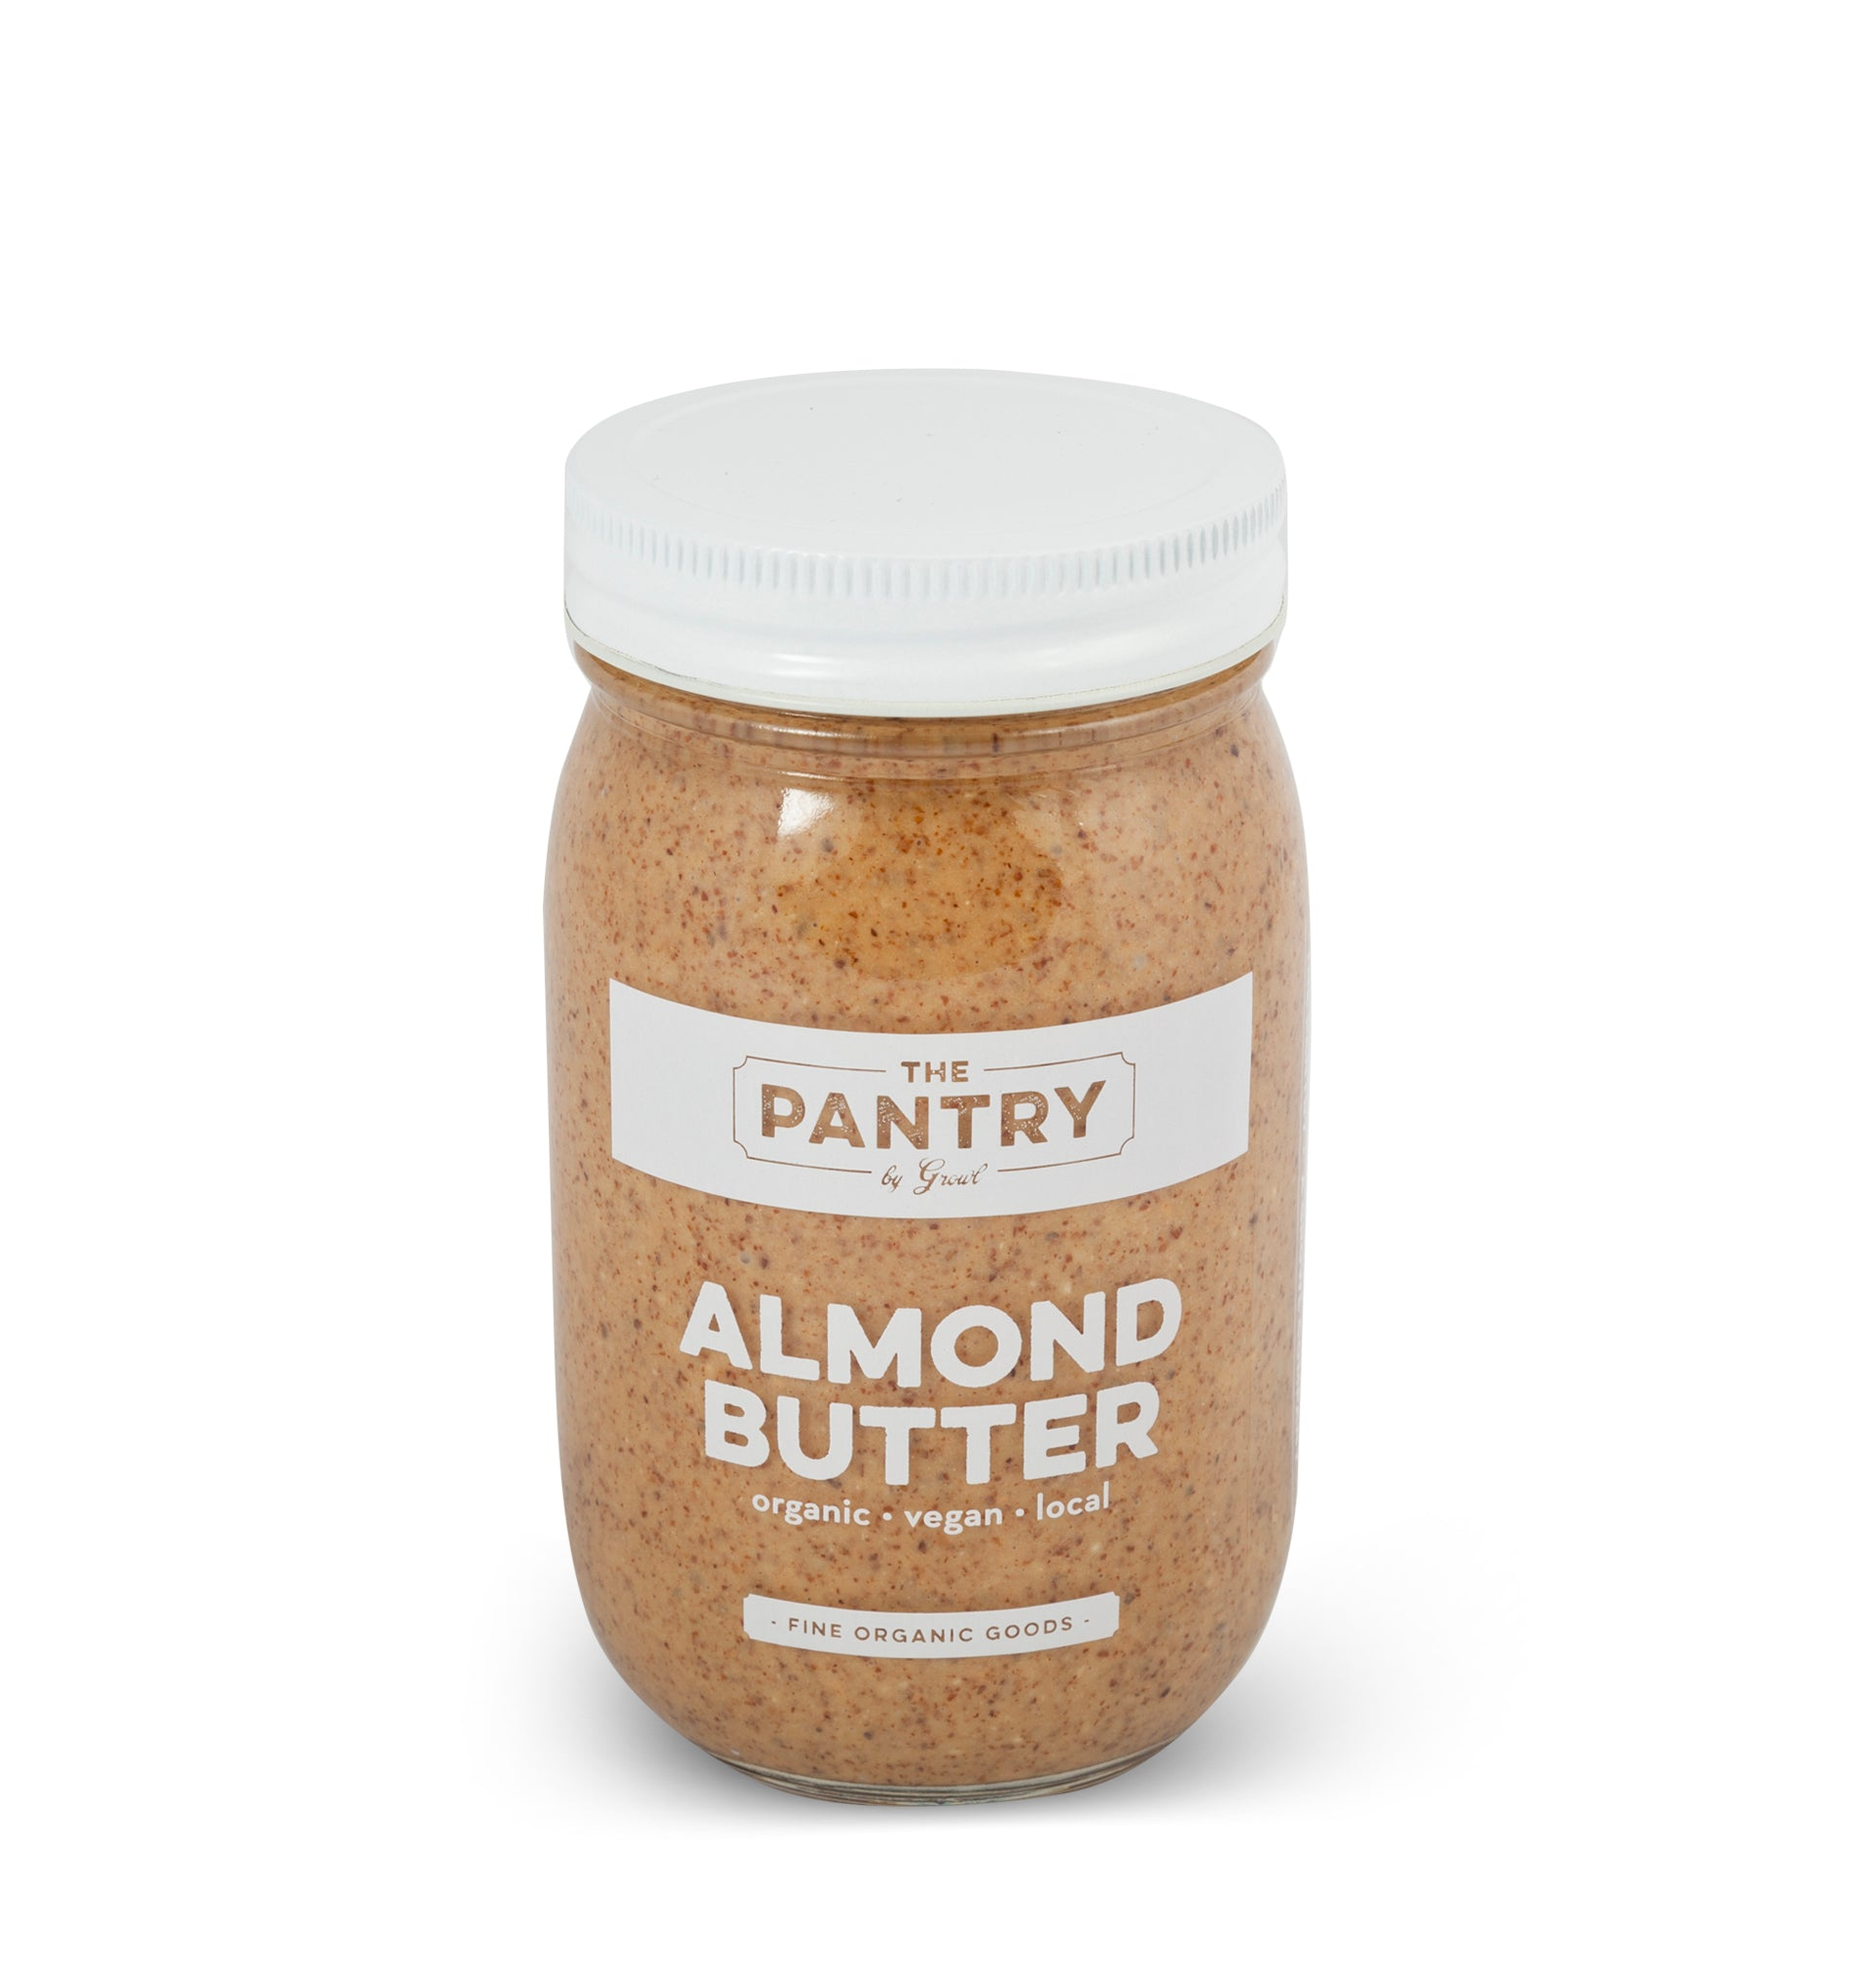 The Pantry by Growl - Almond Butter